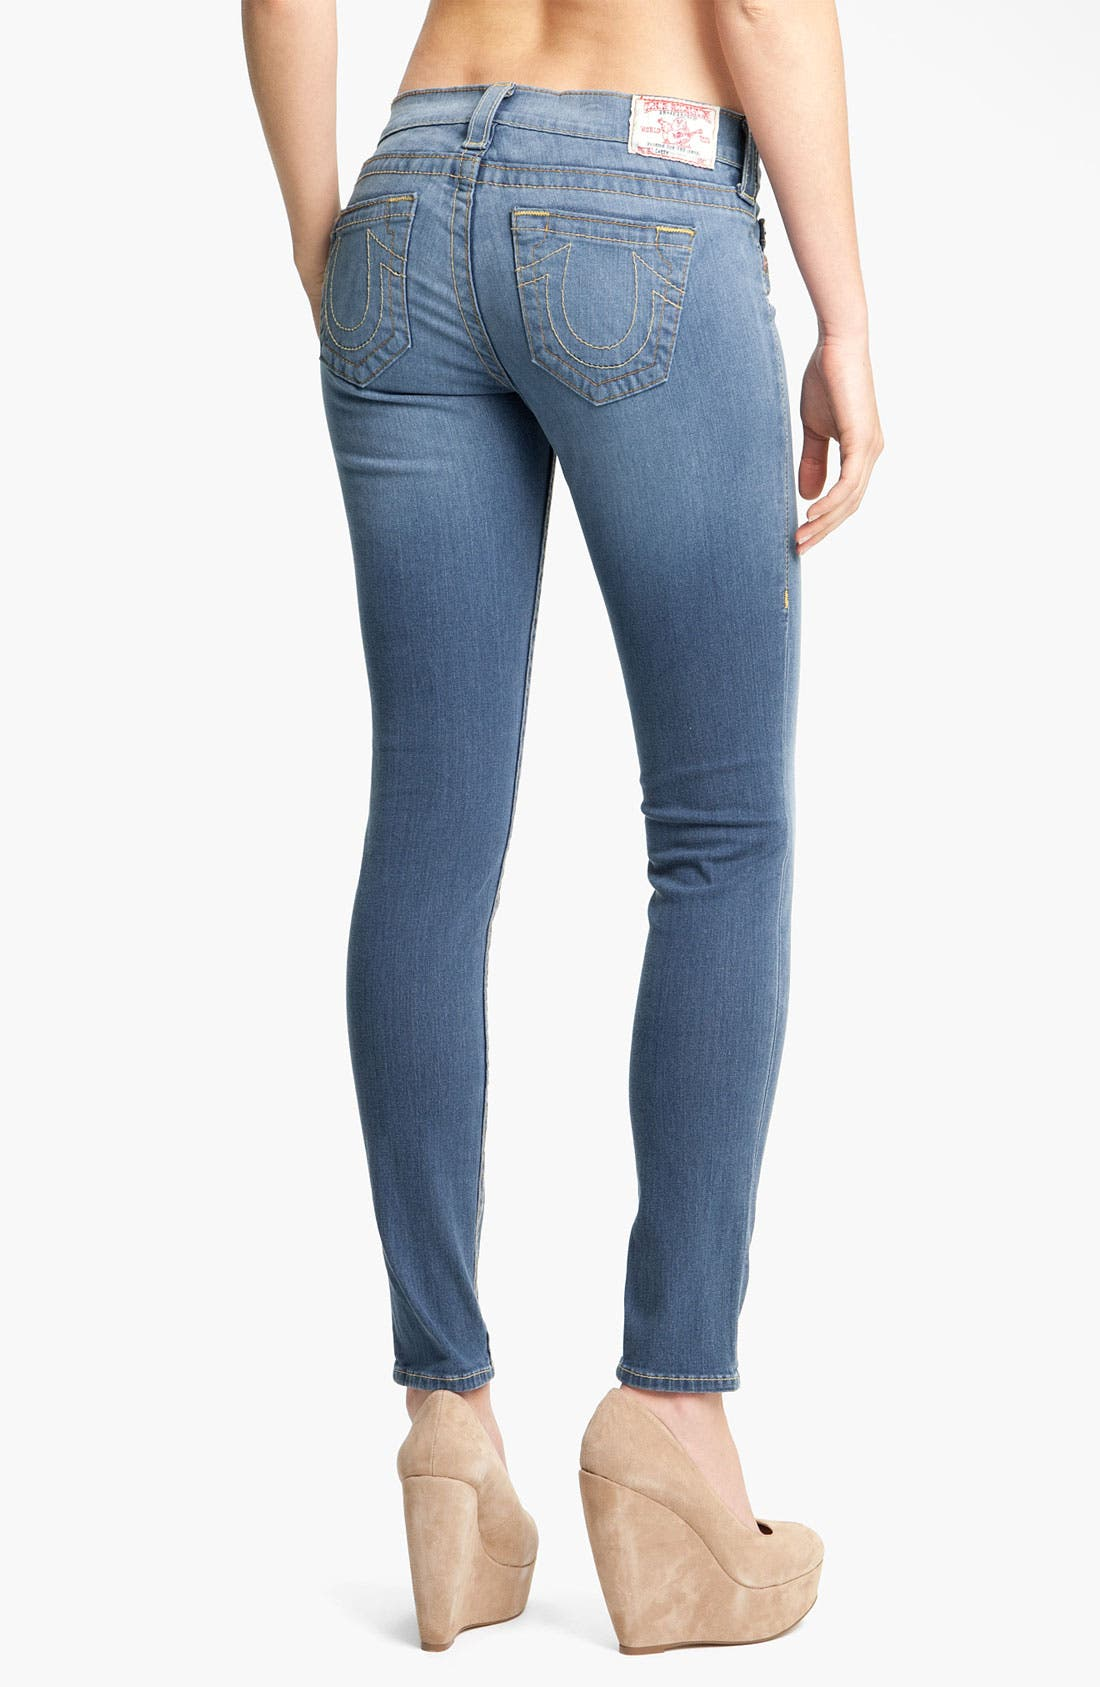 Alternate Image 2  - True Religion Brand Jeans 'Casey' Skinny Stretch Jeans (Stingray)